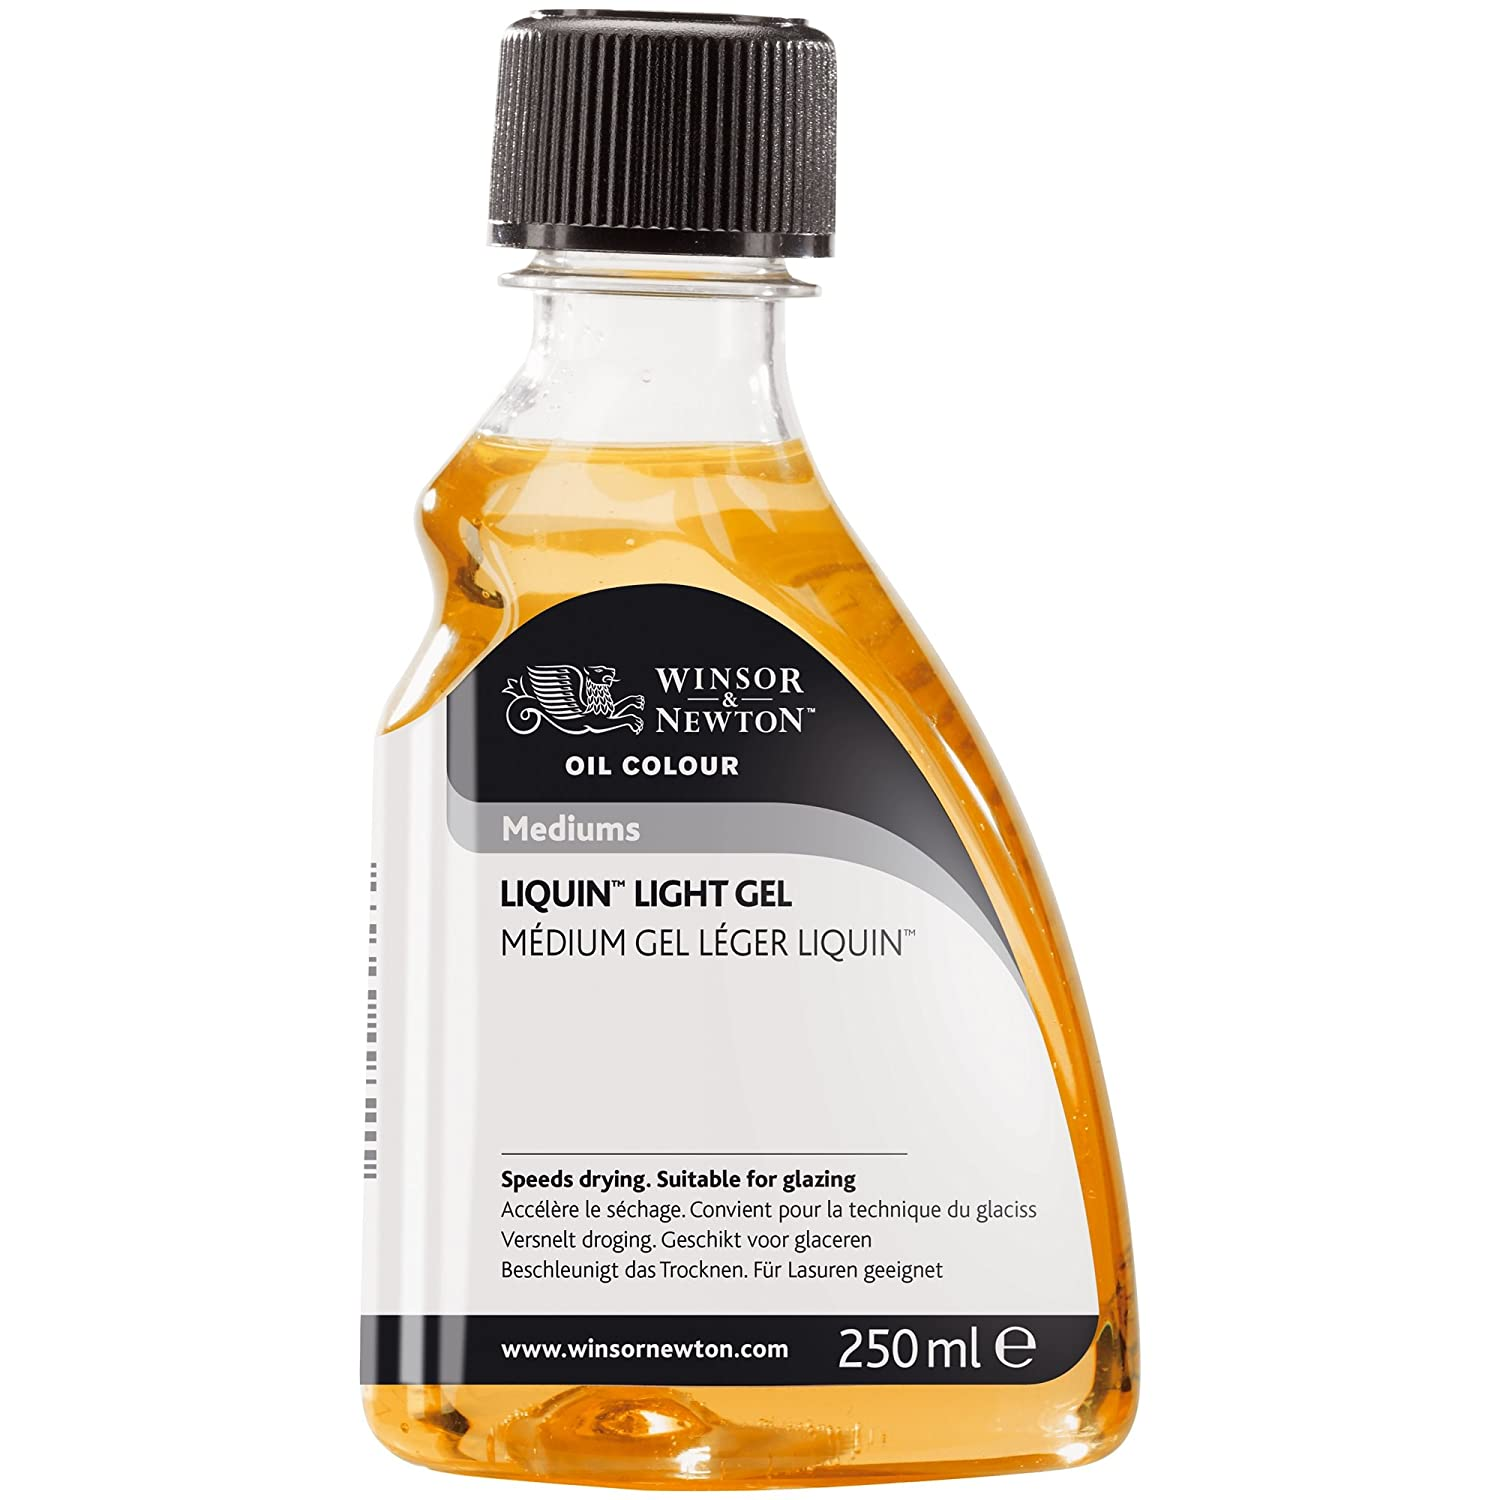 Winsor & Newton Liquin Light Gel Medium, 250ml